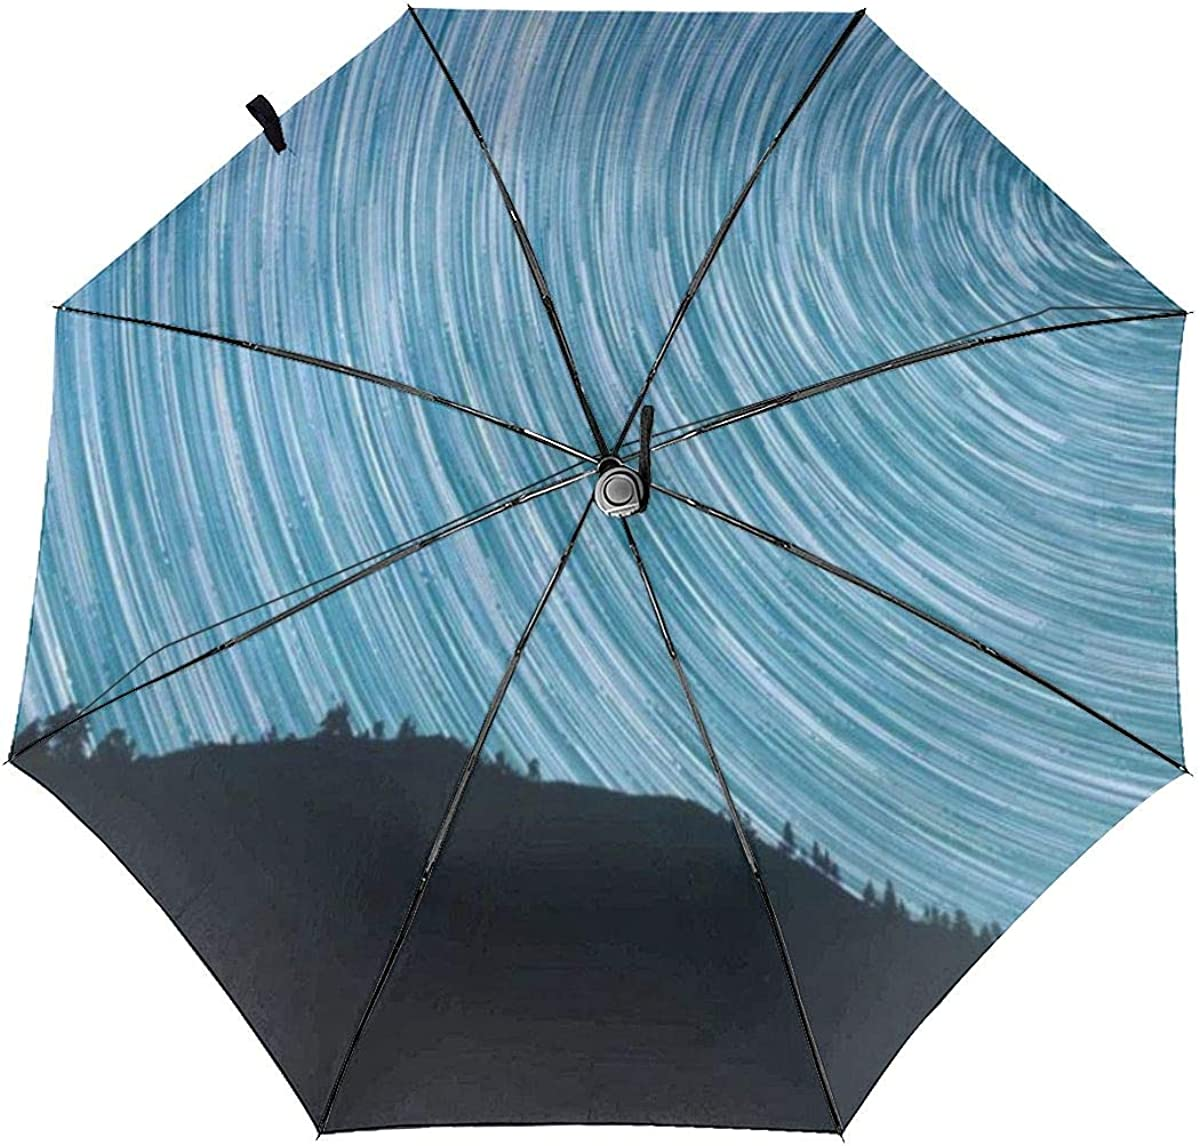 Stars Milkyway Salmon North Startrails Compact Travel Umbrella Windproof Reinforced Canopy 8 Ribs Umbrella Auto Open And Close Button Personalized